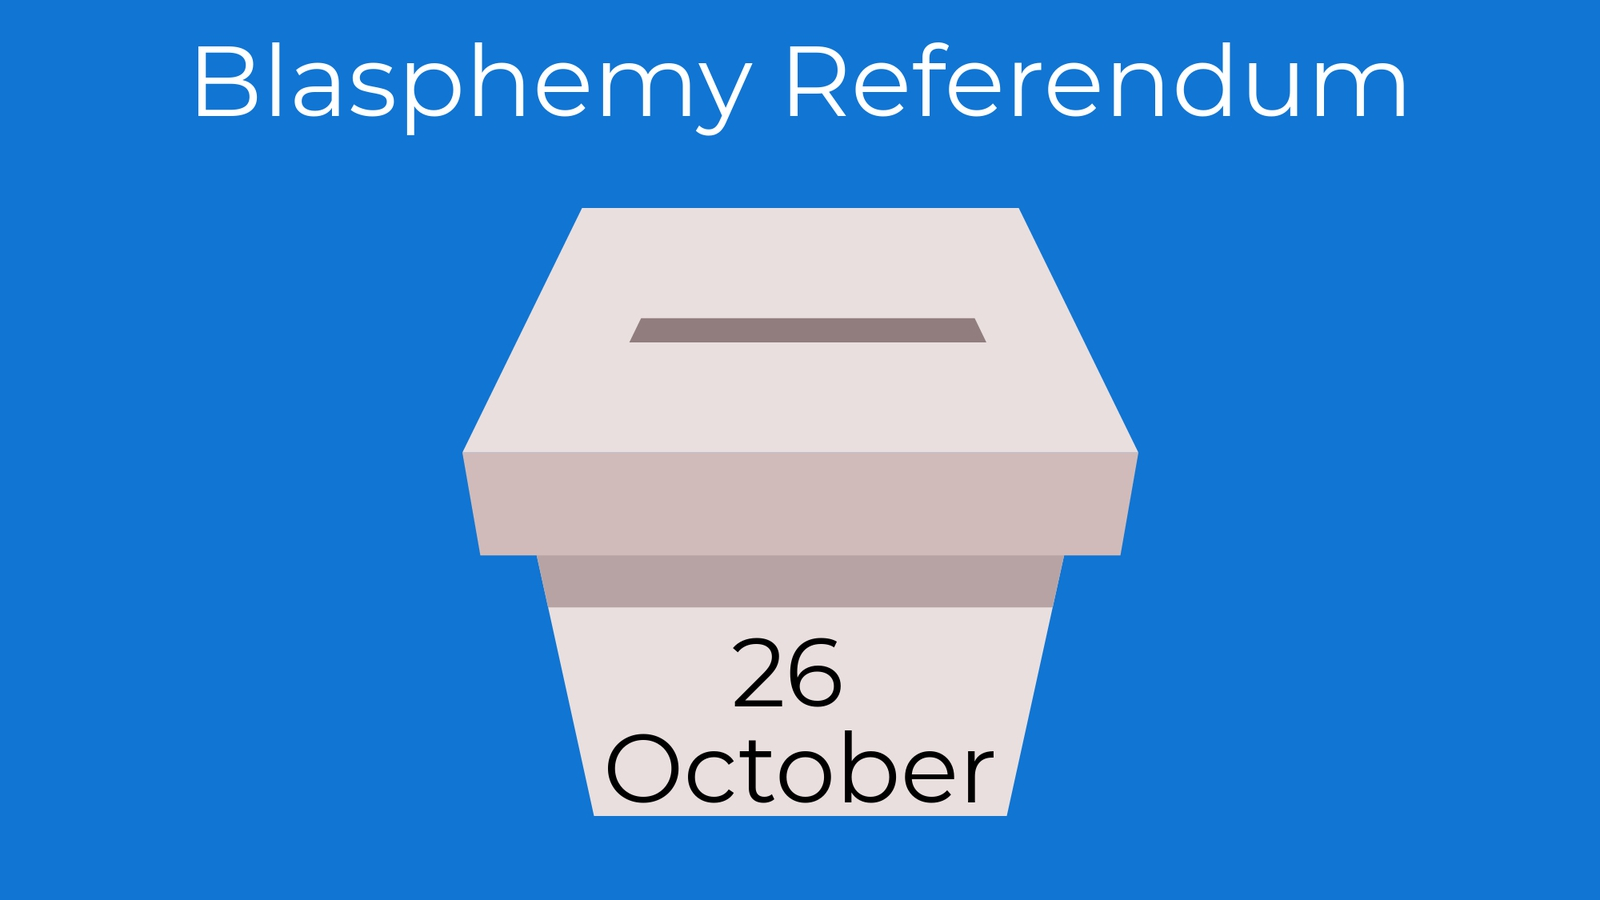 a guide to the referendum on blasphemy